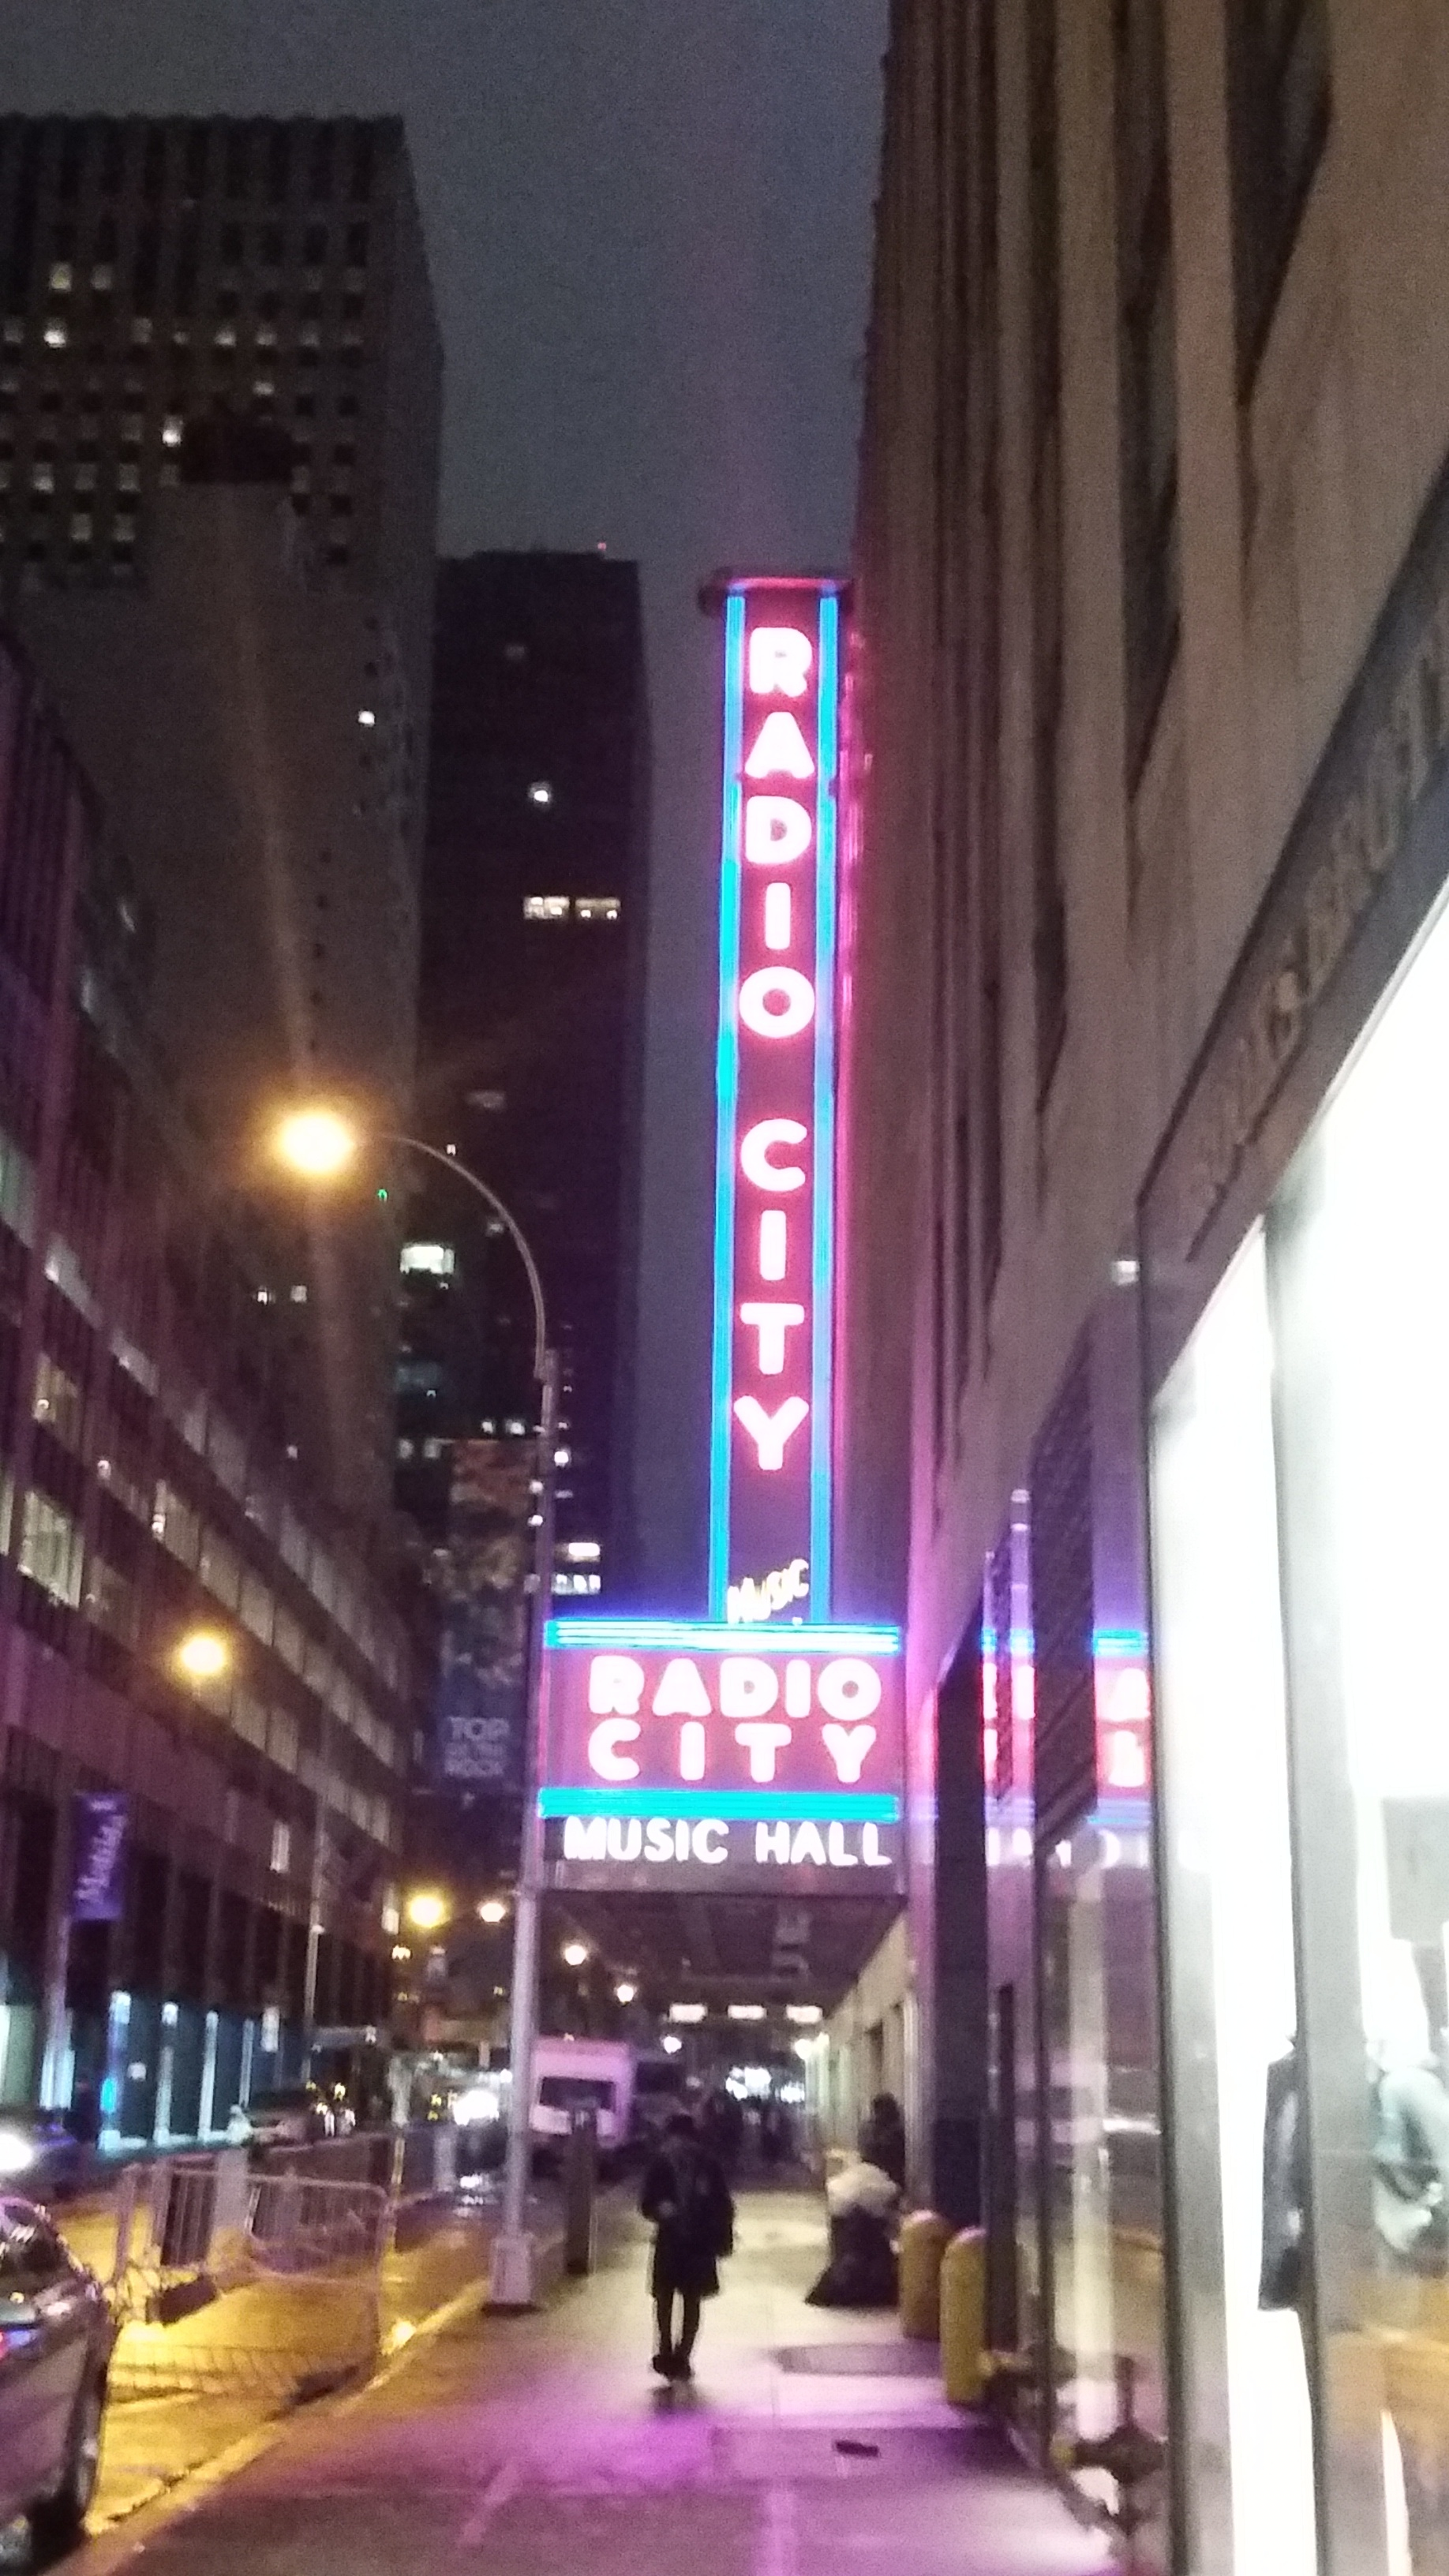 We stayed at a hotel right near Radio City Music Hall. NBC Studios is just a few steps away.